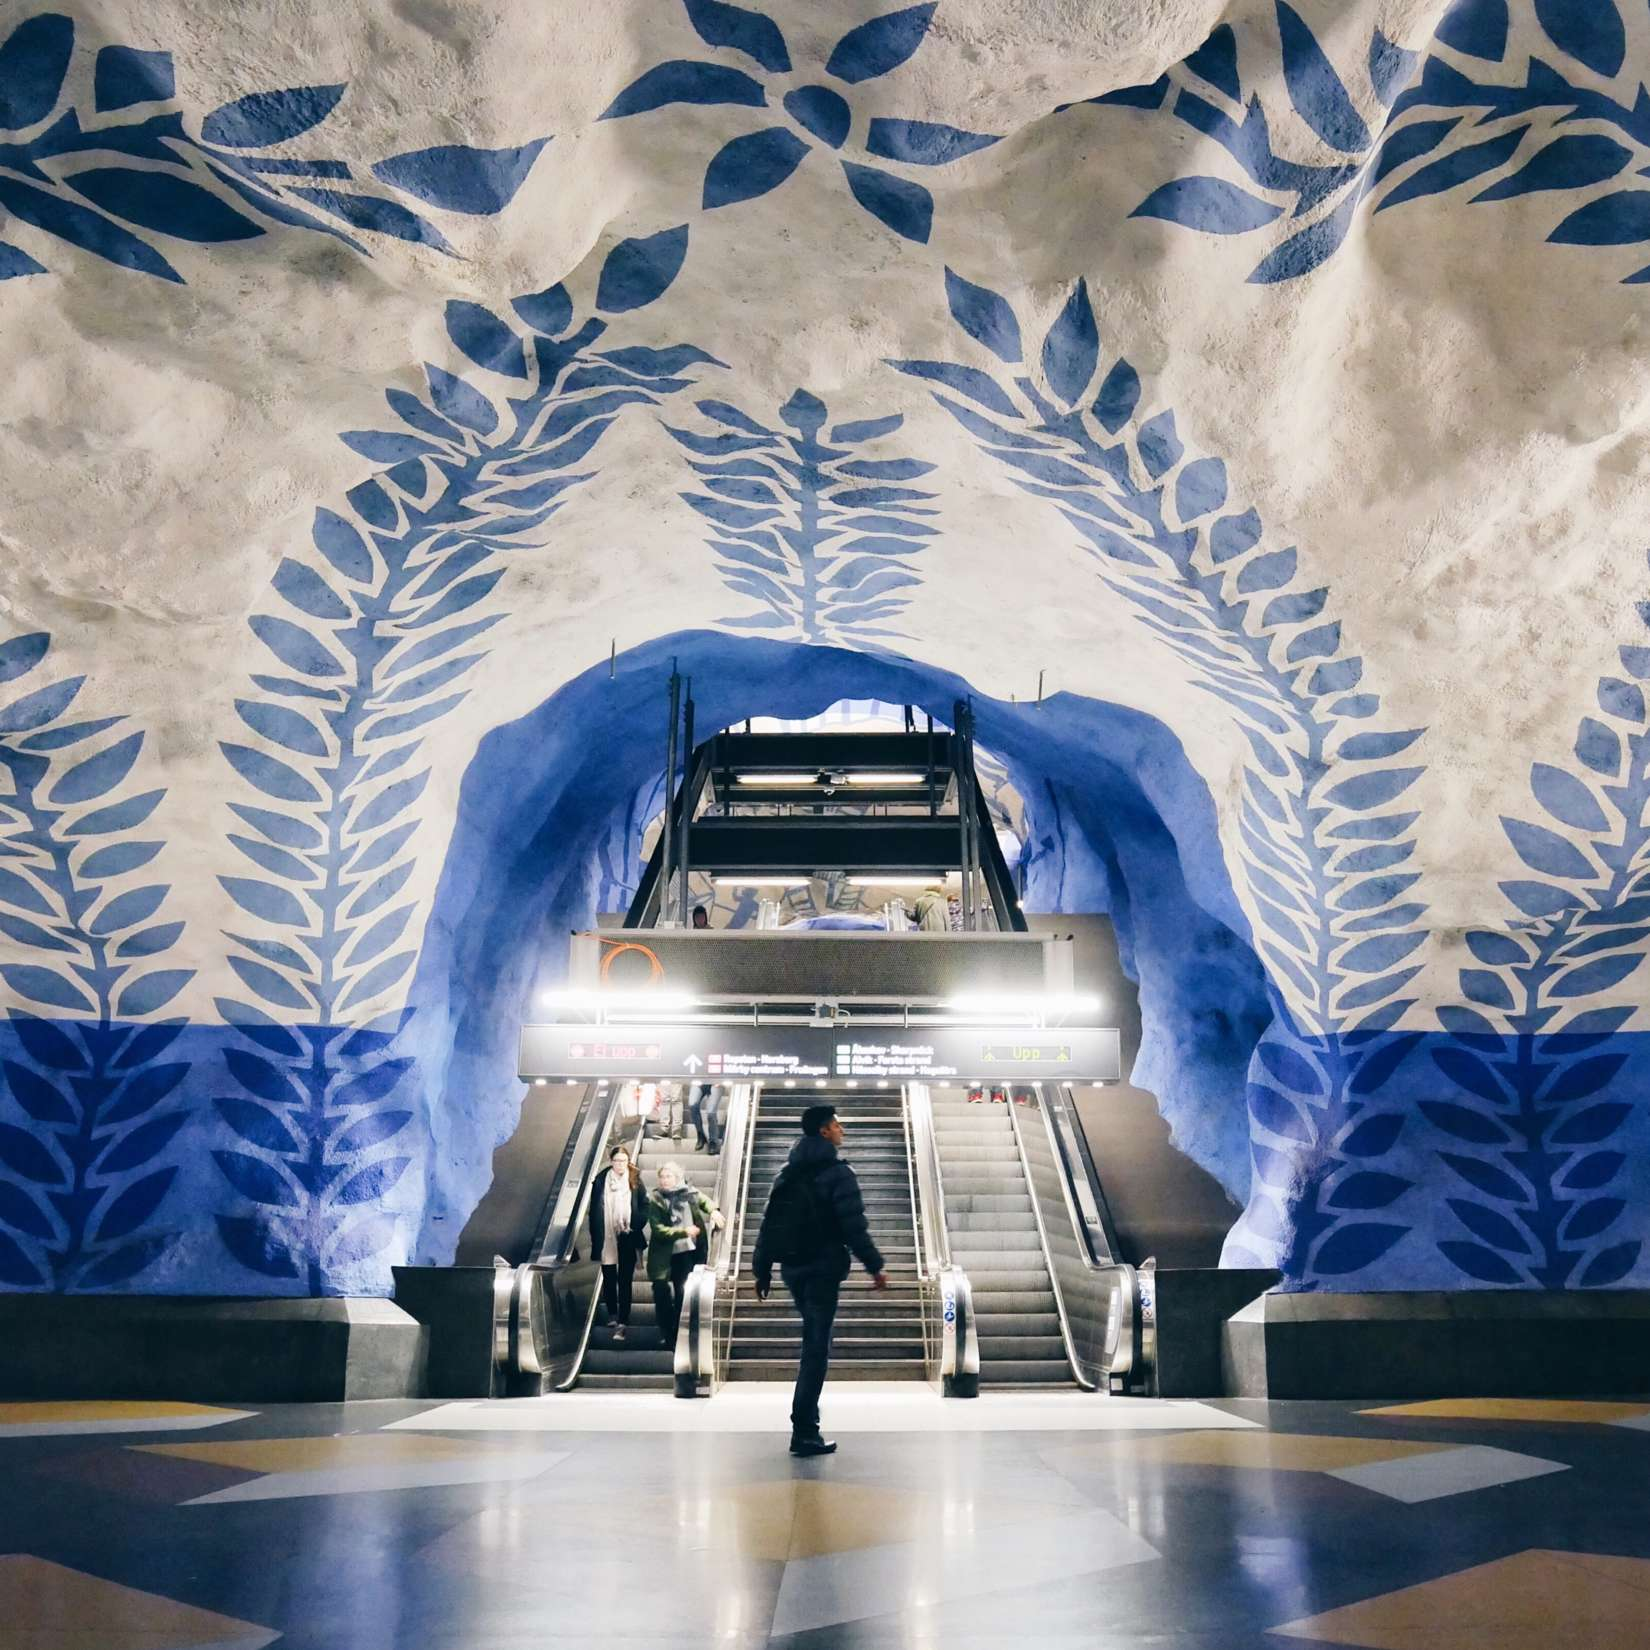 Stockholm subway art:RELOCATION: What You Should Offer More Than Work Life Balance